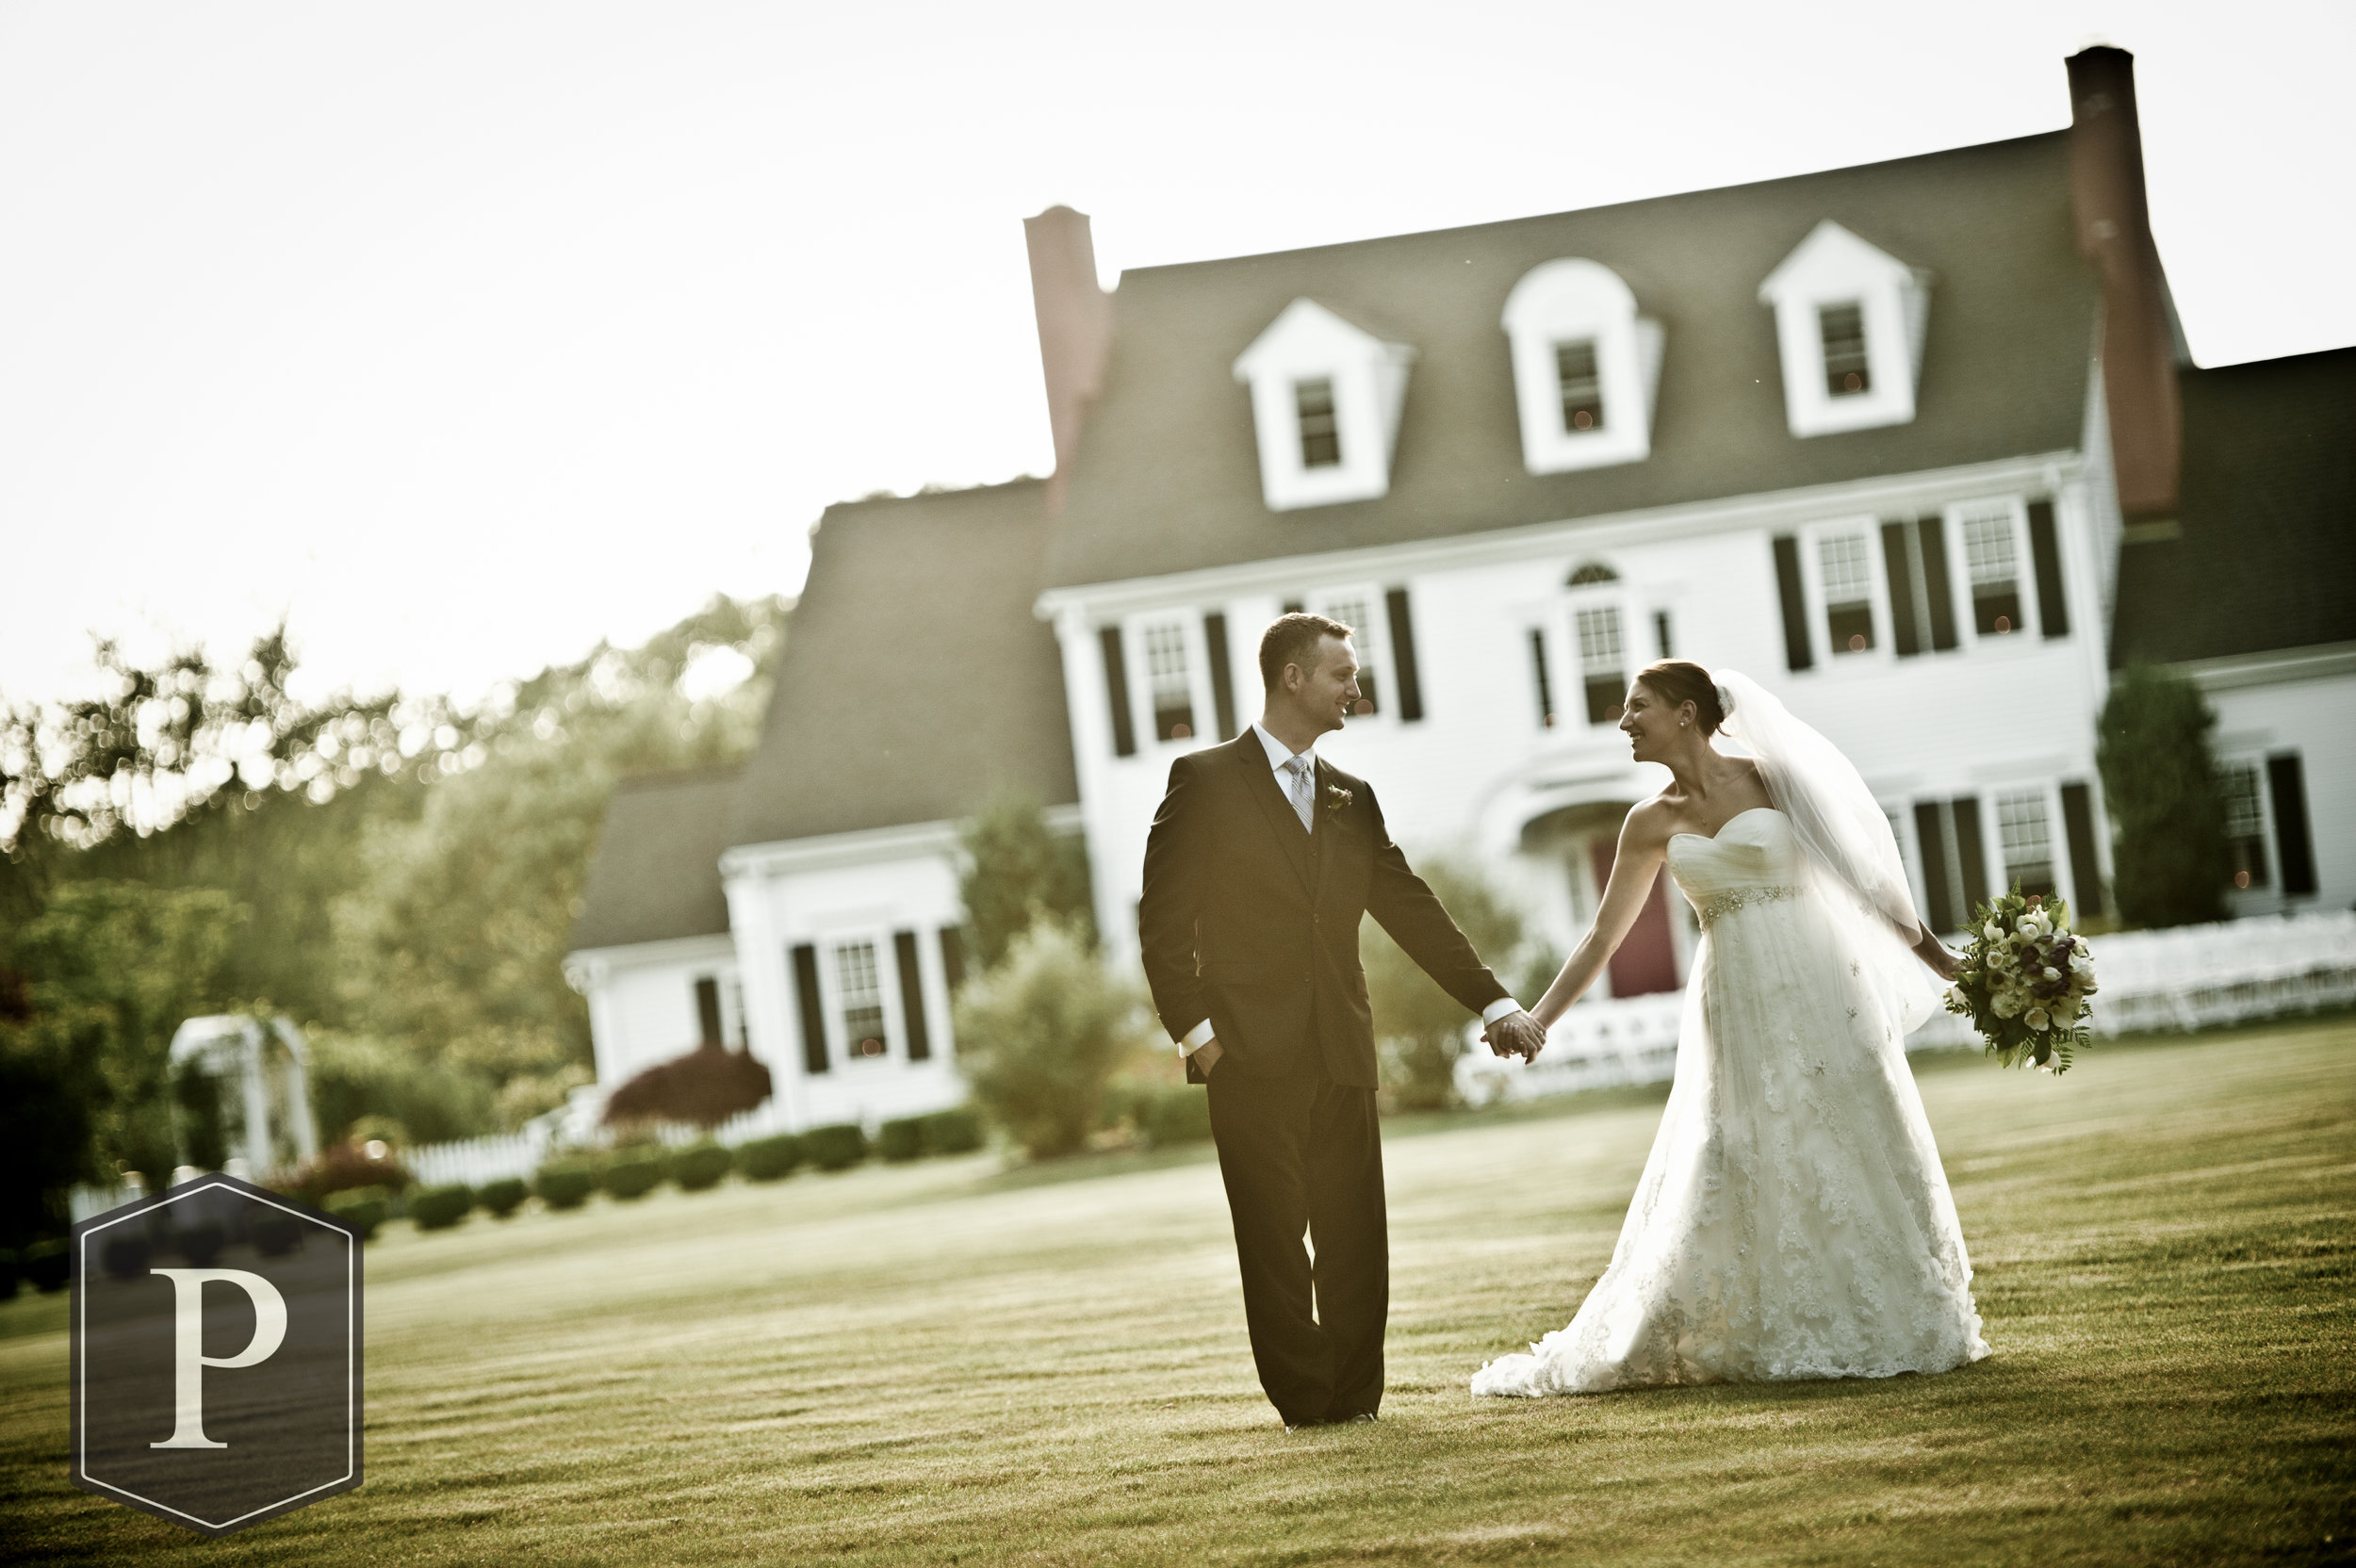 _Gallery_2013-07 [Kendall Pavan Photography].jpg